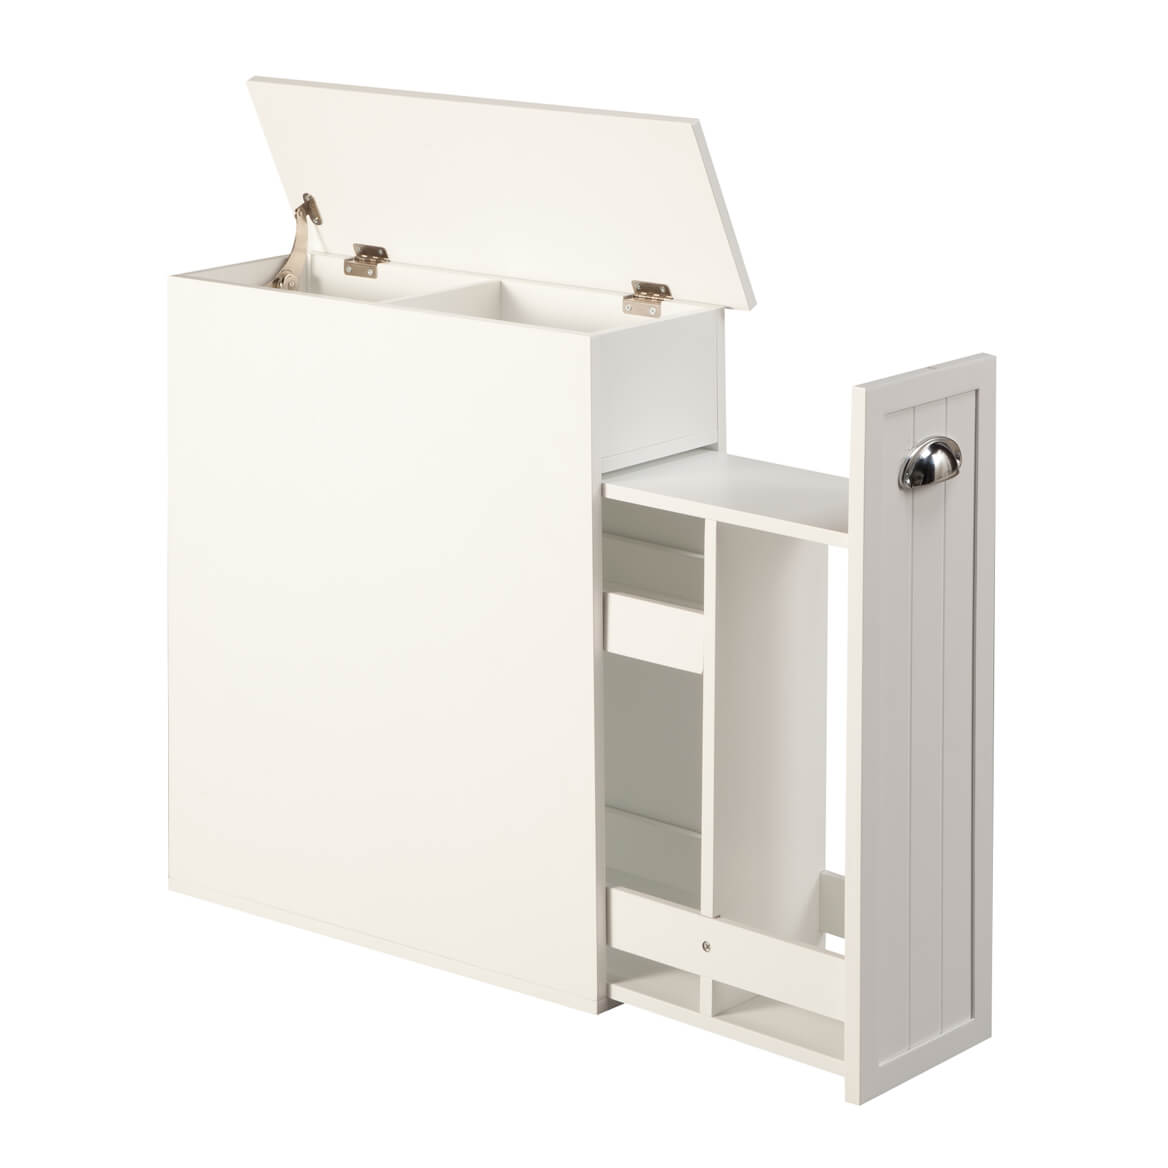 Slim Bathroom Storage Cabinet By OakRidge